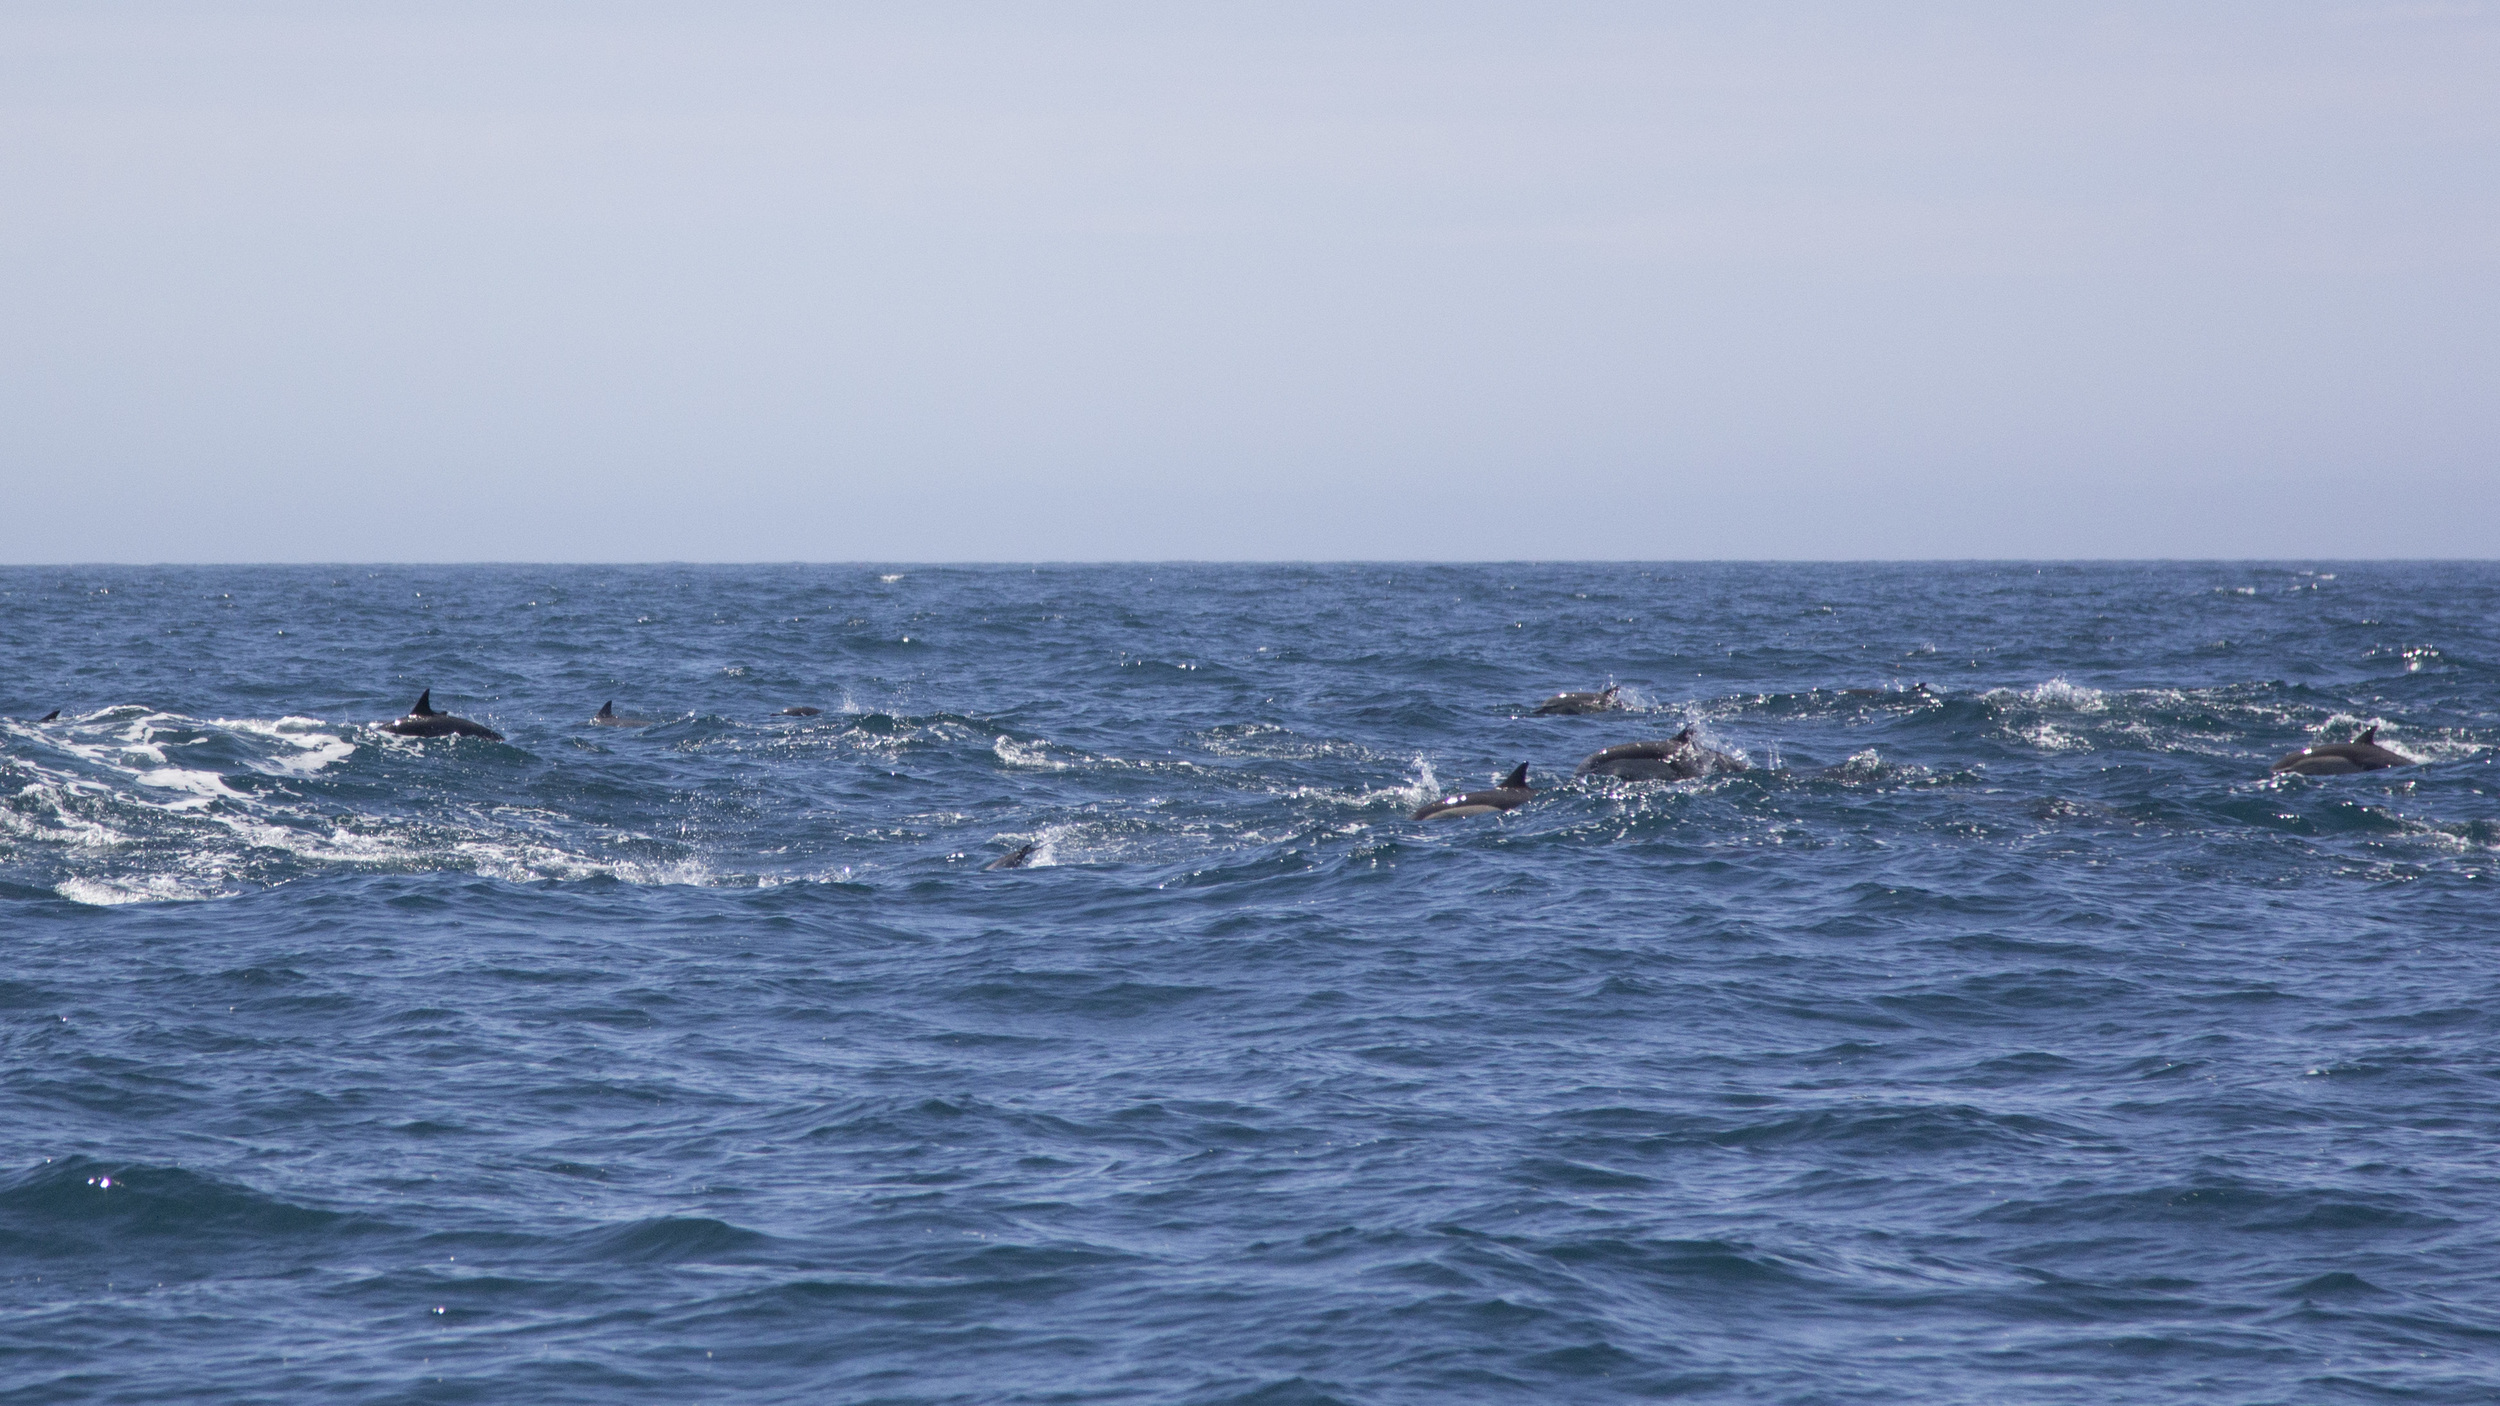 The Pod of Dolphins we saw! Photo Credit: Michael Auffant